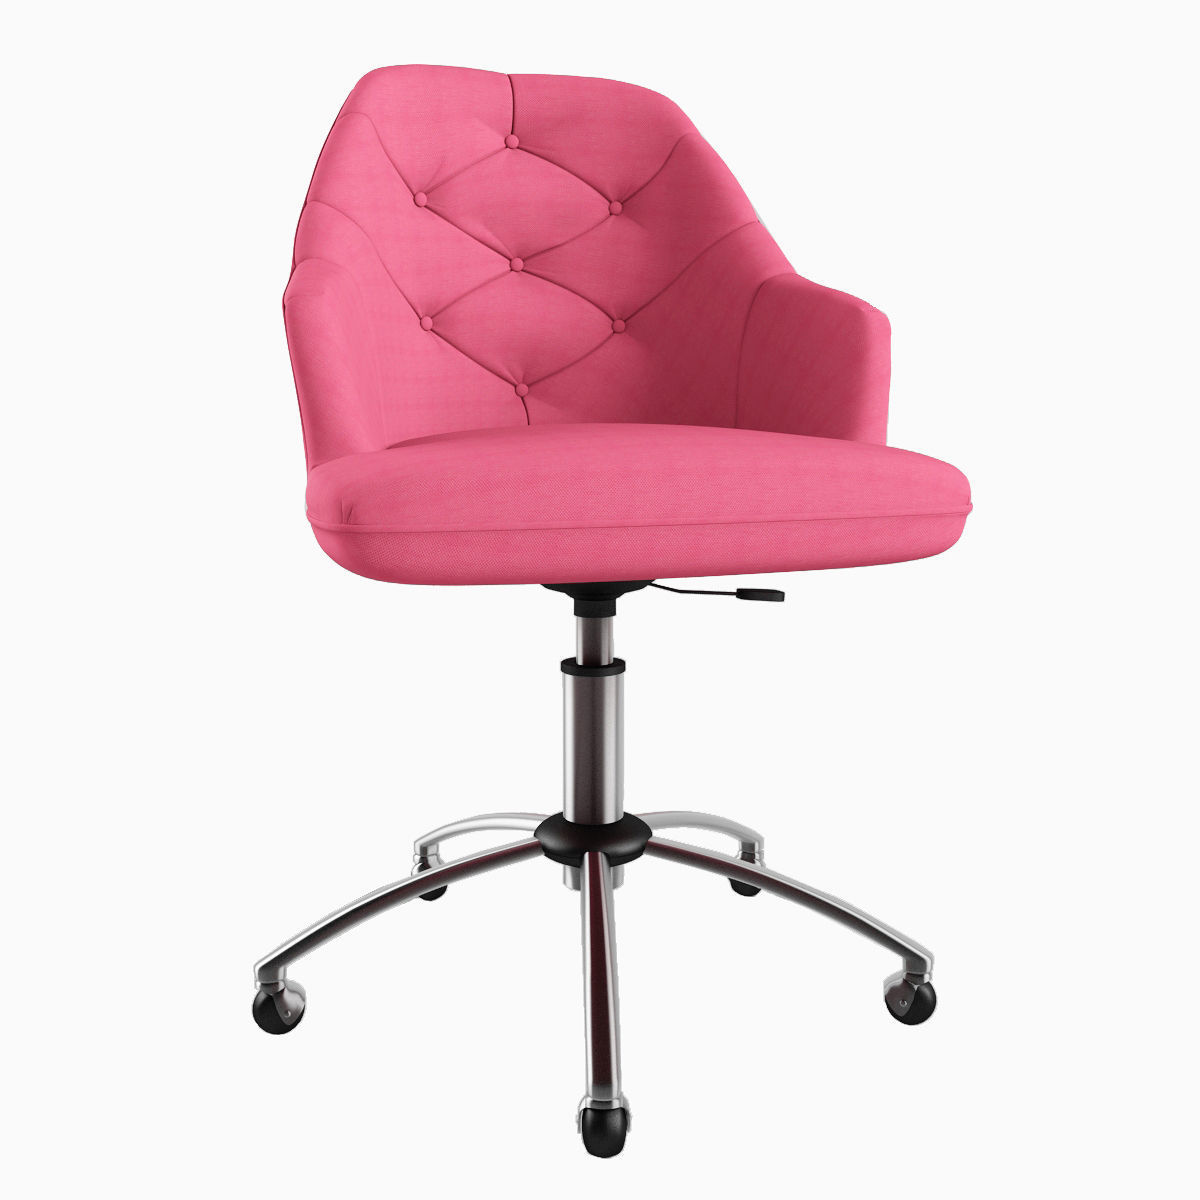 tufted desk chair stool with footrest 3d print model cgtrader max obj mtl fbx 1